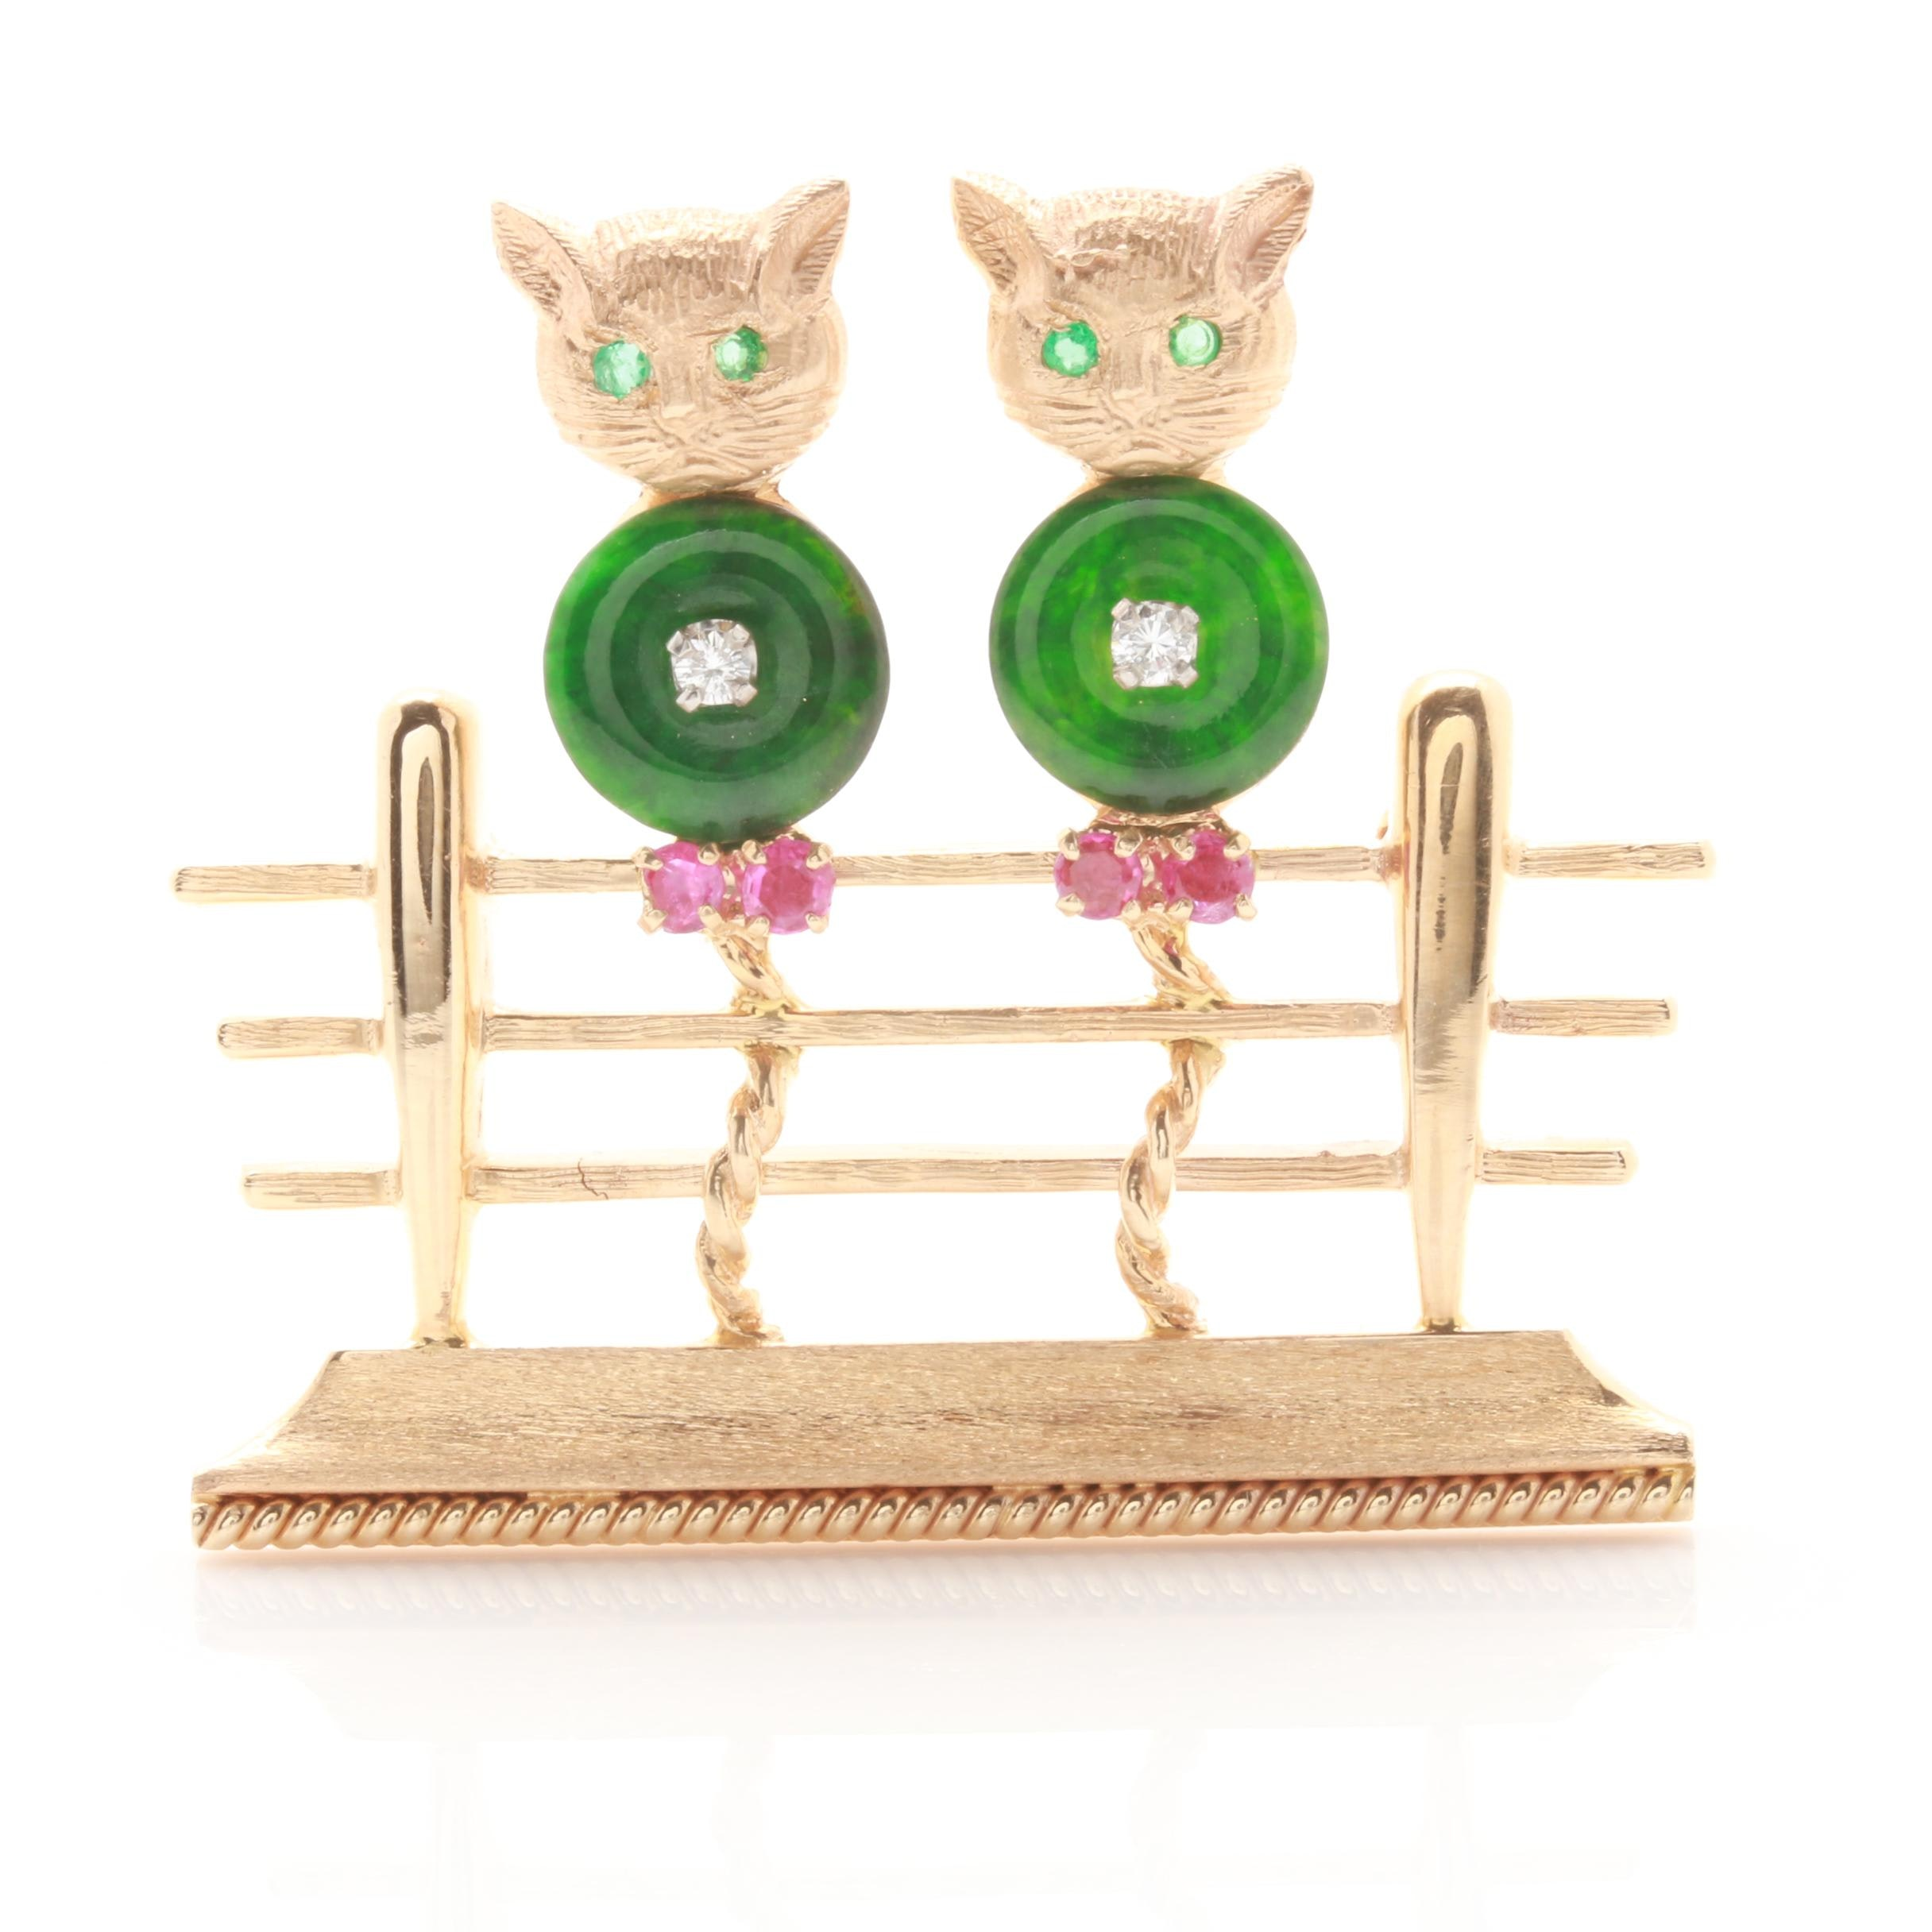 14K Yellow Gold Jadeite, Ruby, Diamond and Emerald Cats on Fence Brooch